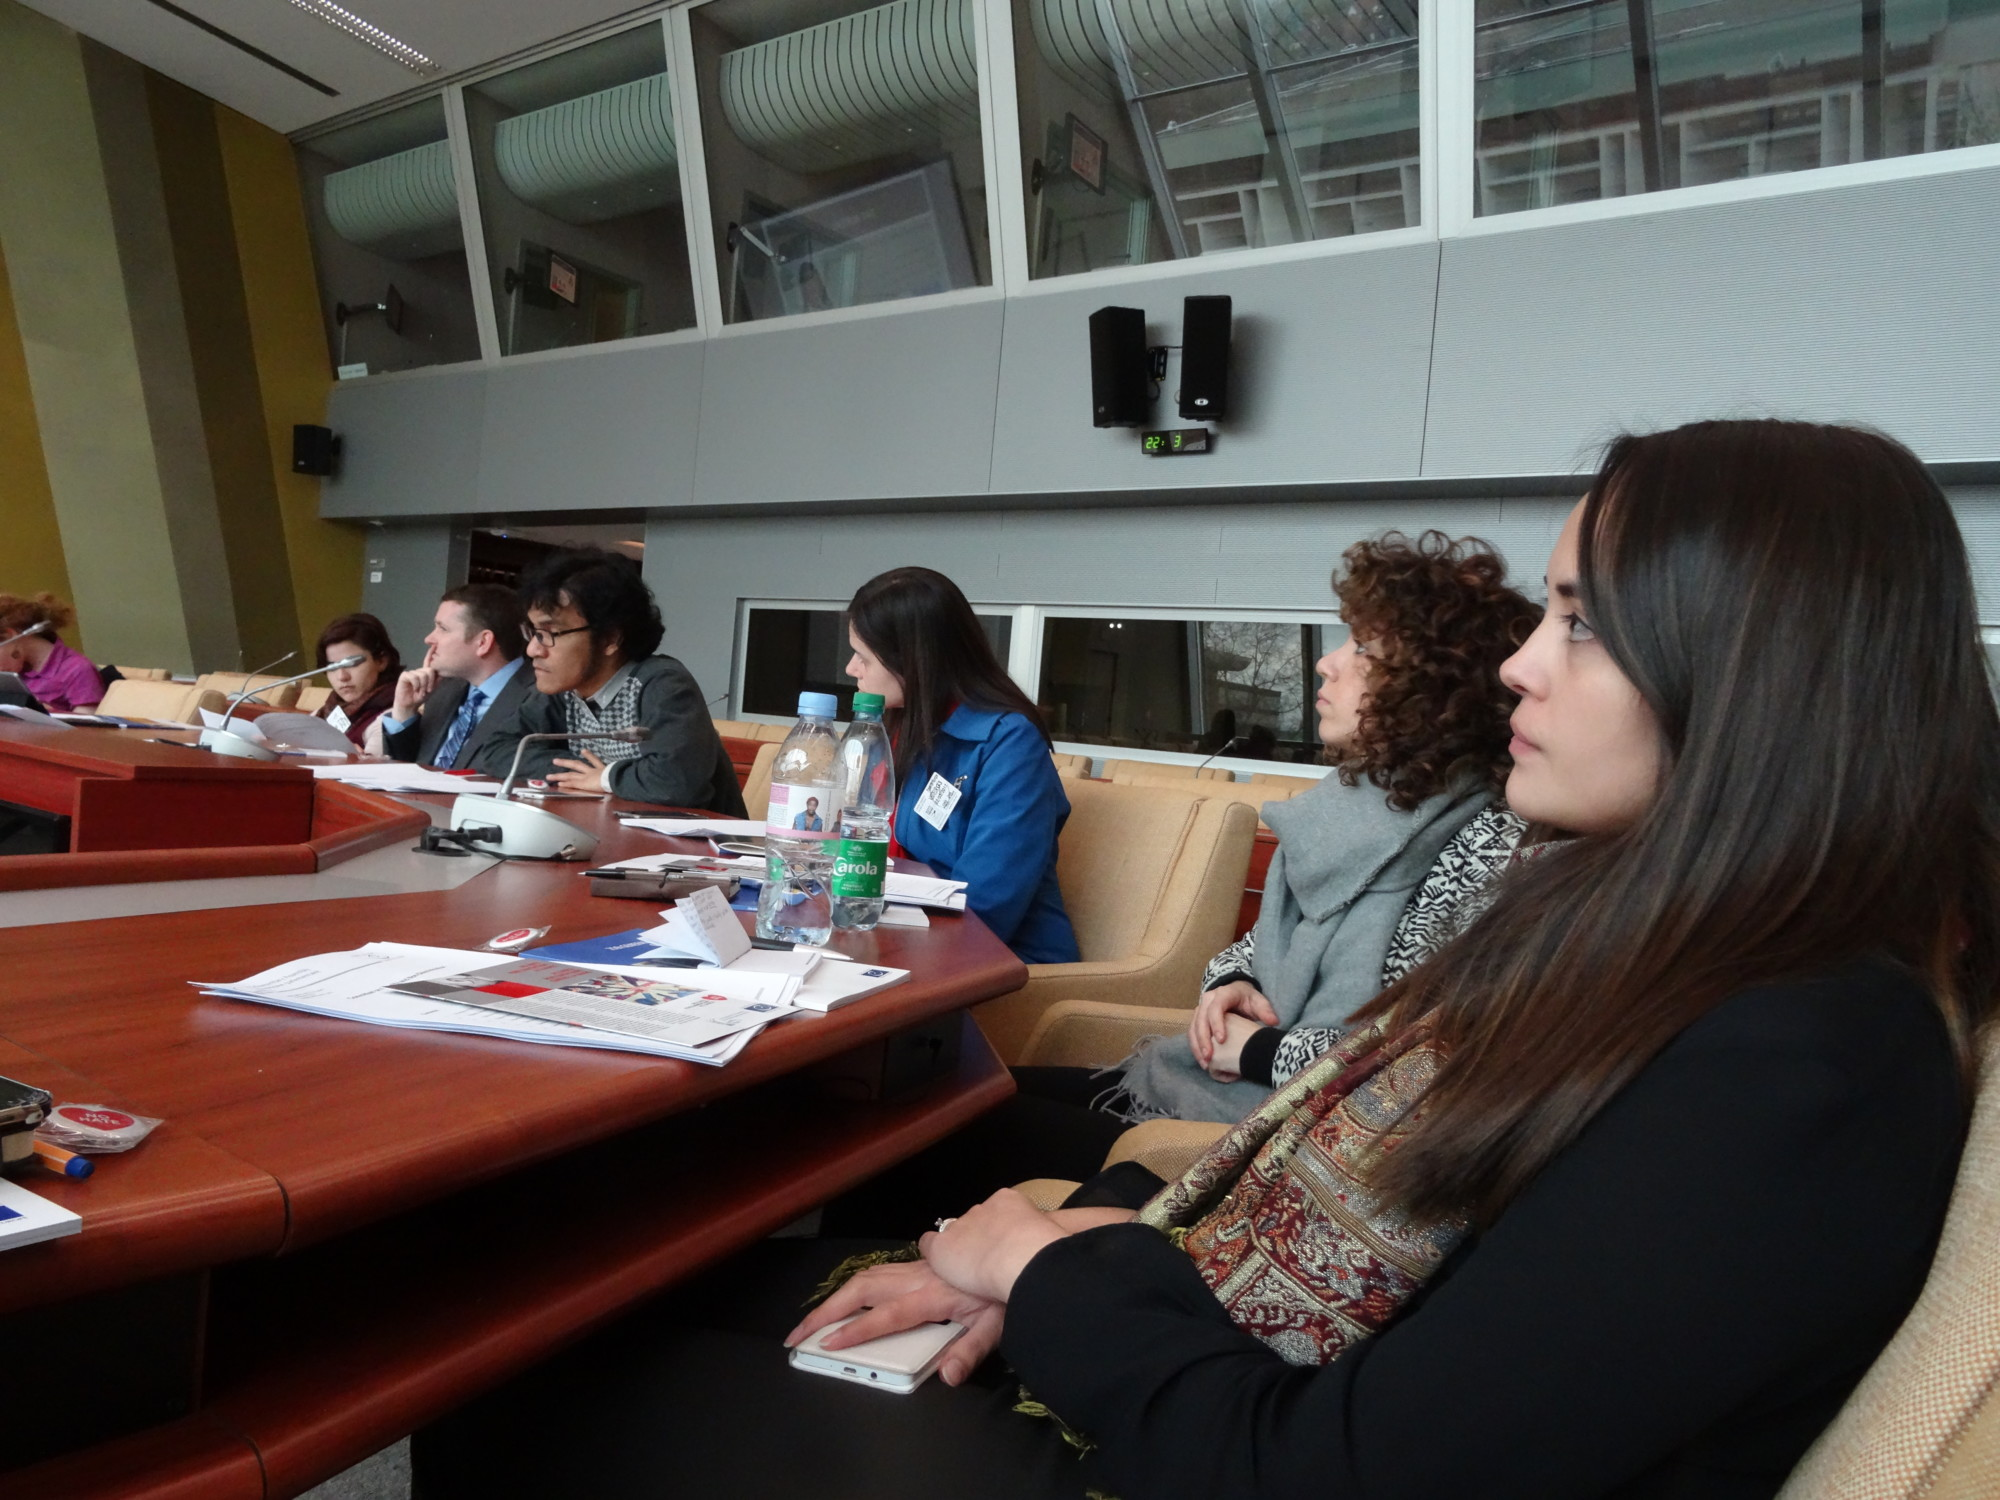 group of students attending a visit at the Council of Europe